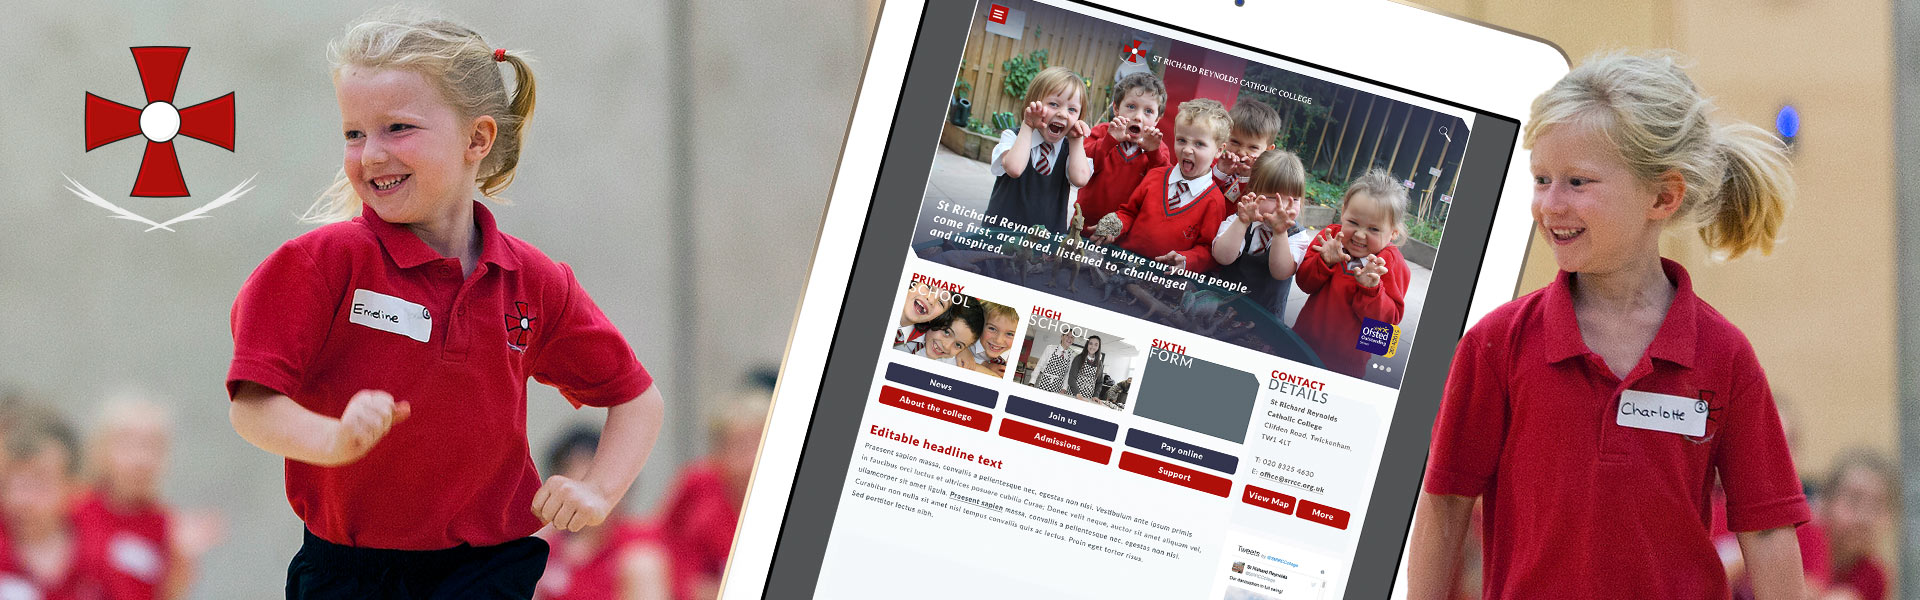 St Richard Reynolds Catholic School Website Design